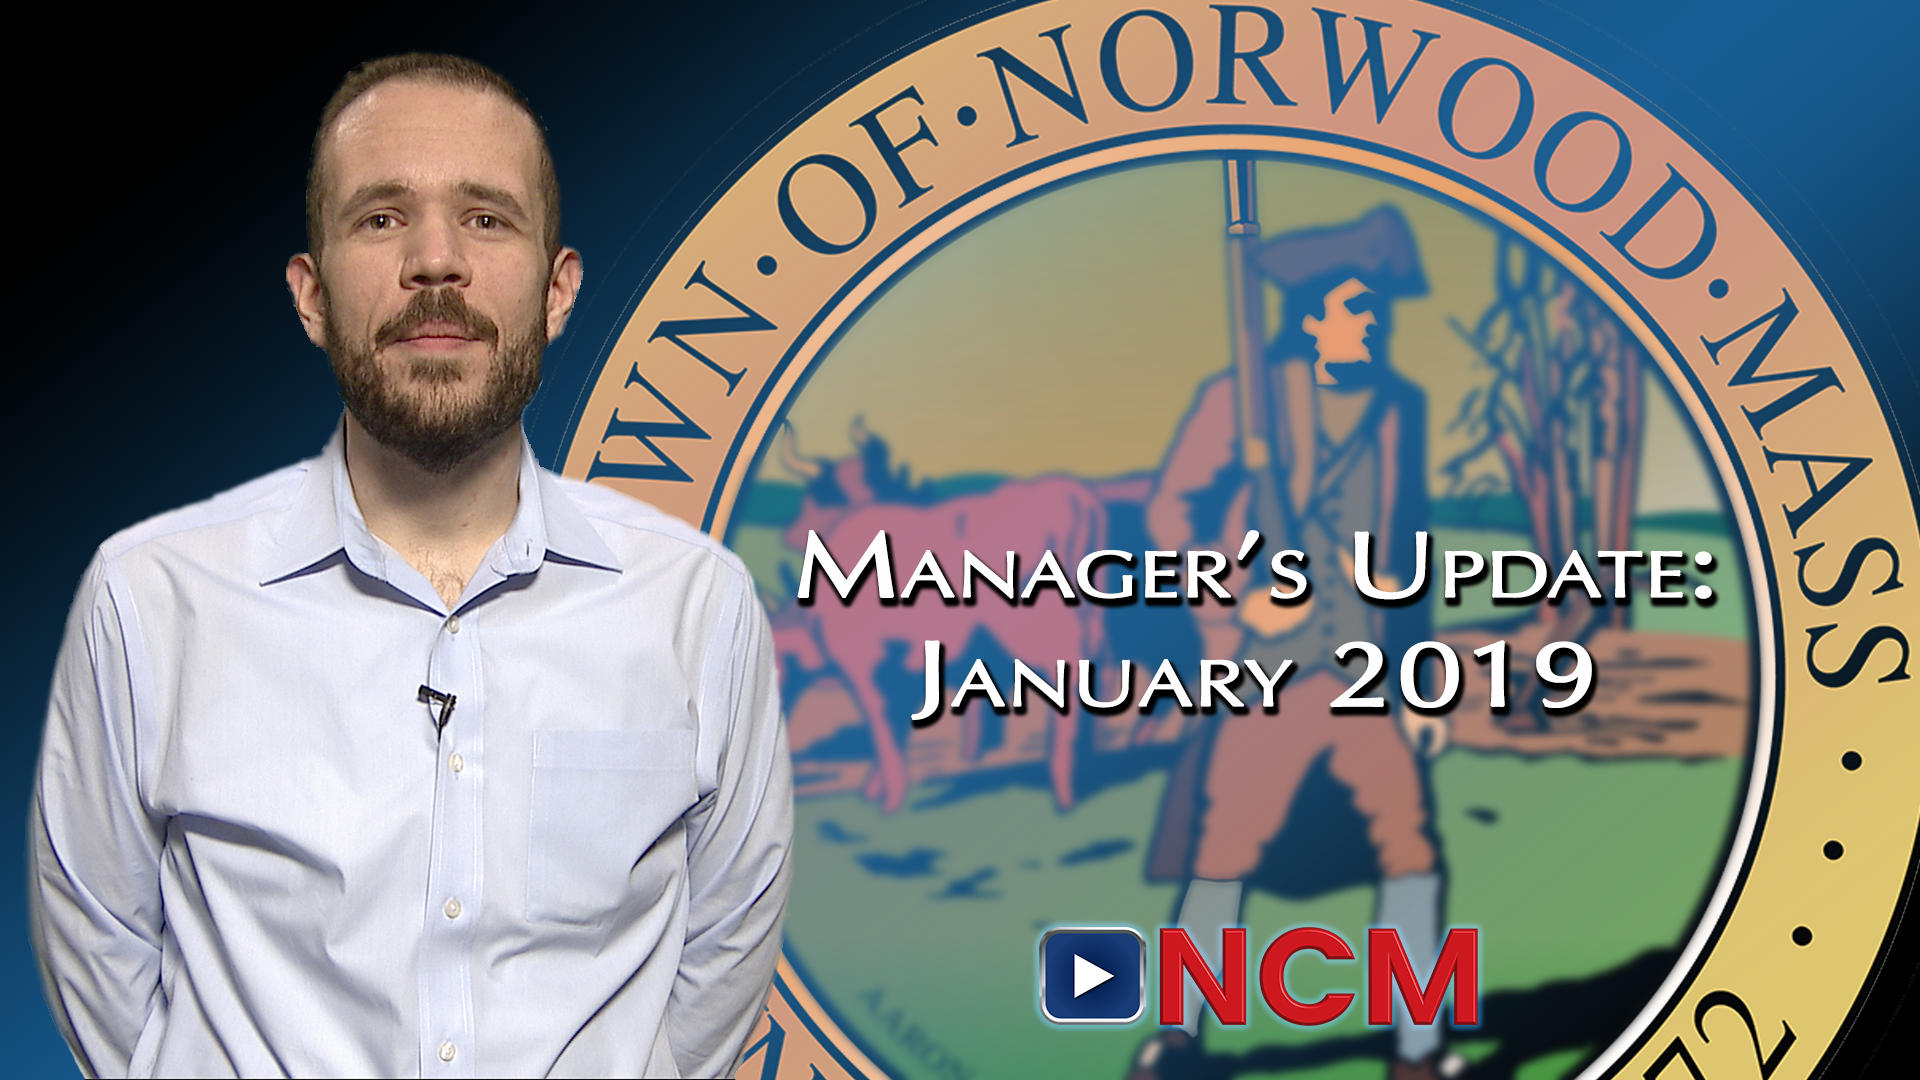 General Manager's Update: January 2019